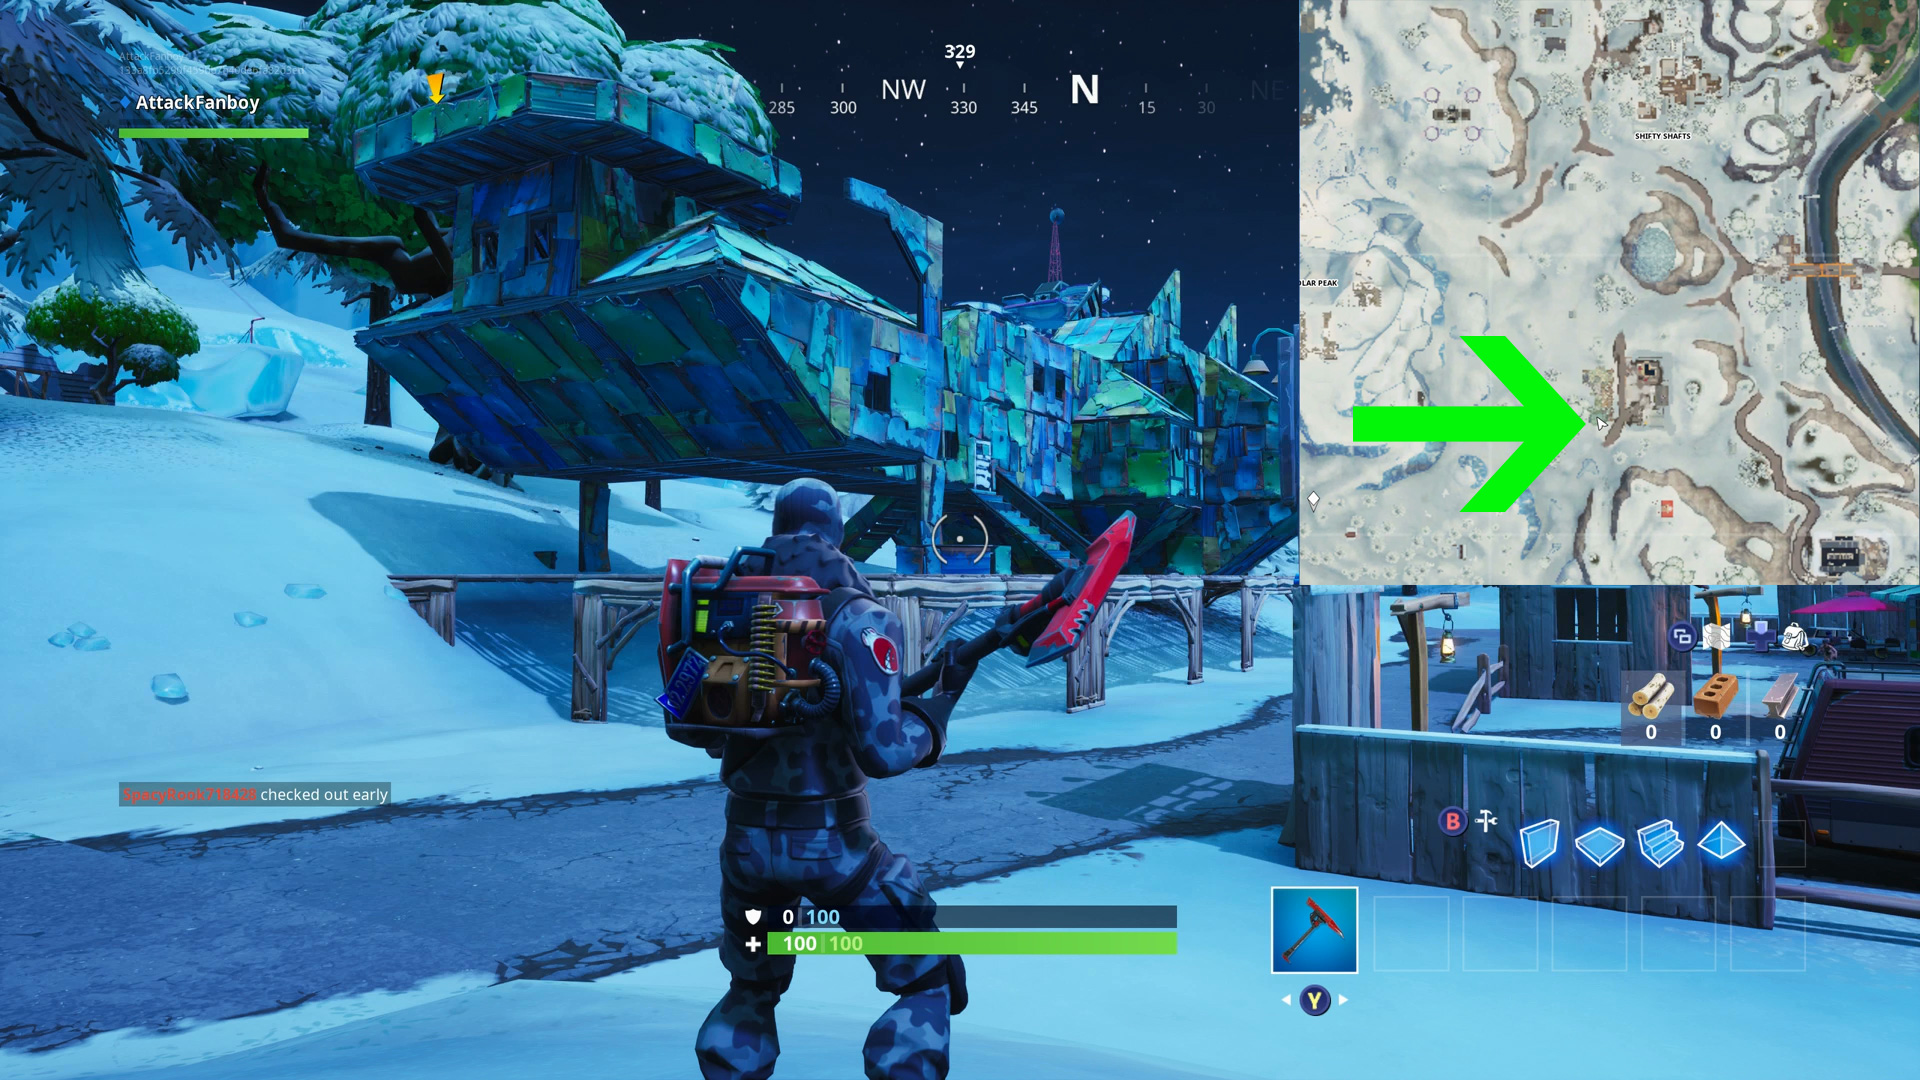 spaceship-building-location-fortbyte-19